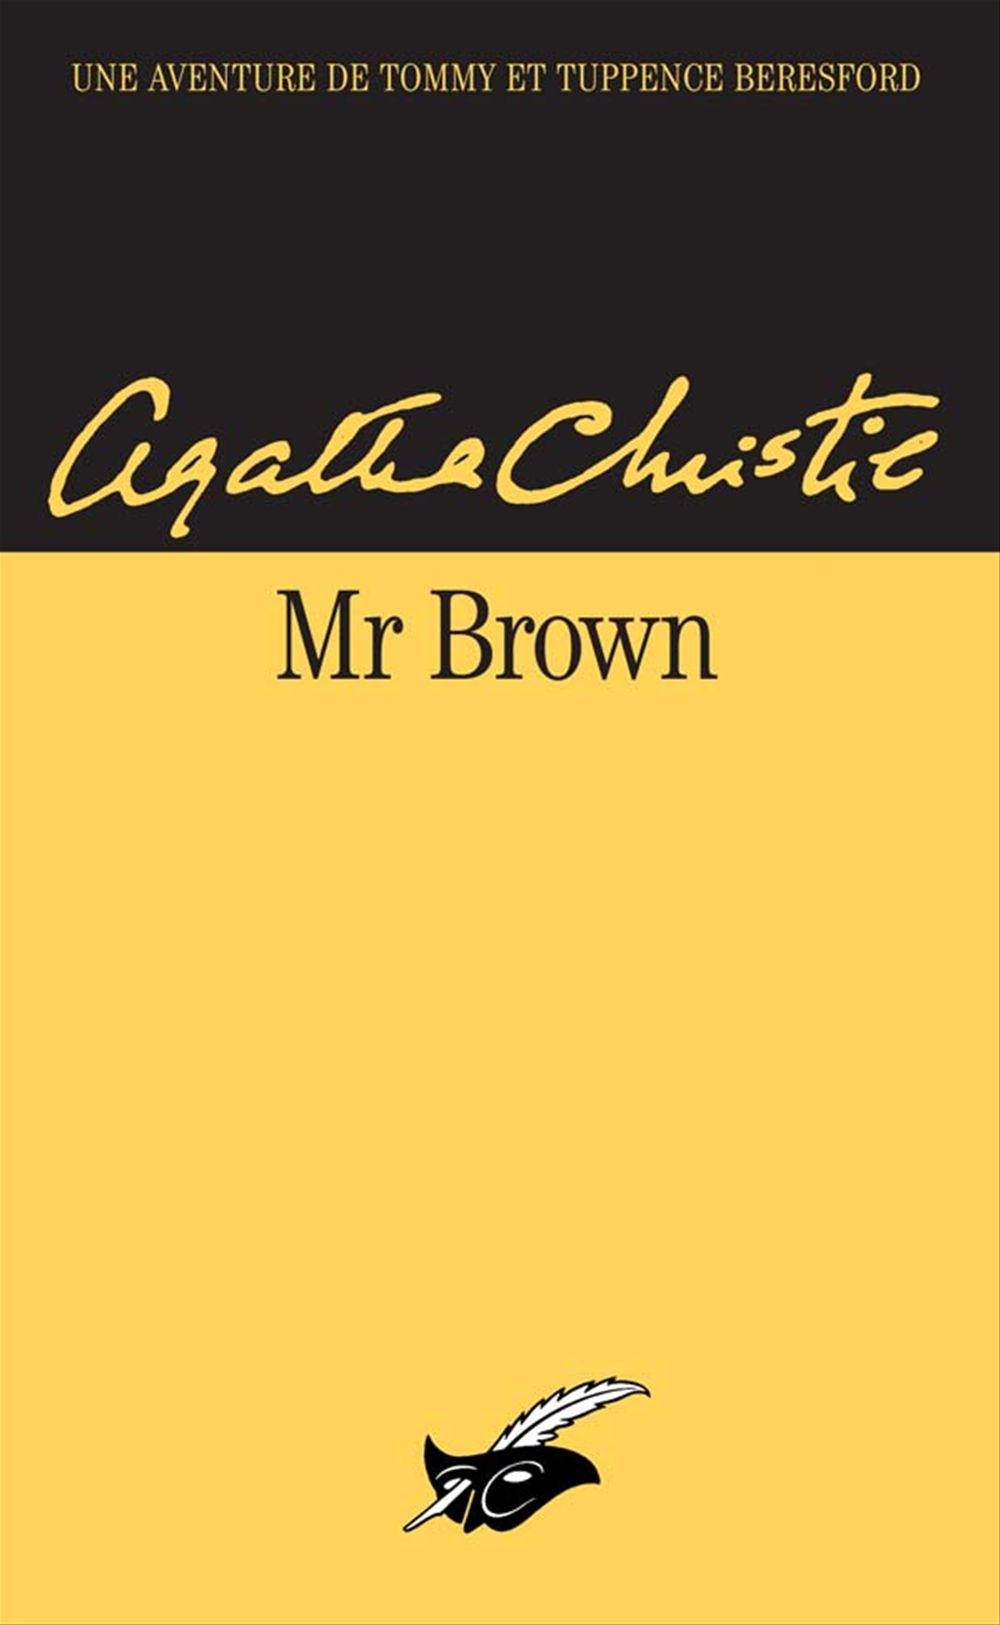 Monsieur Brown